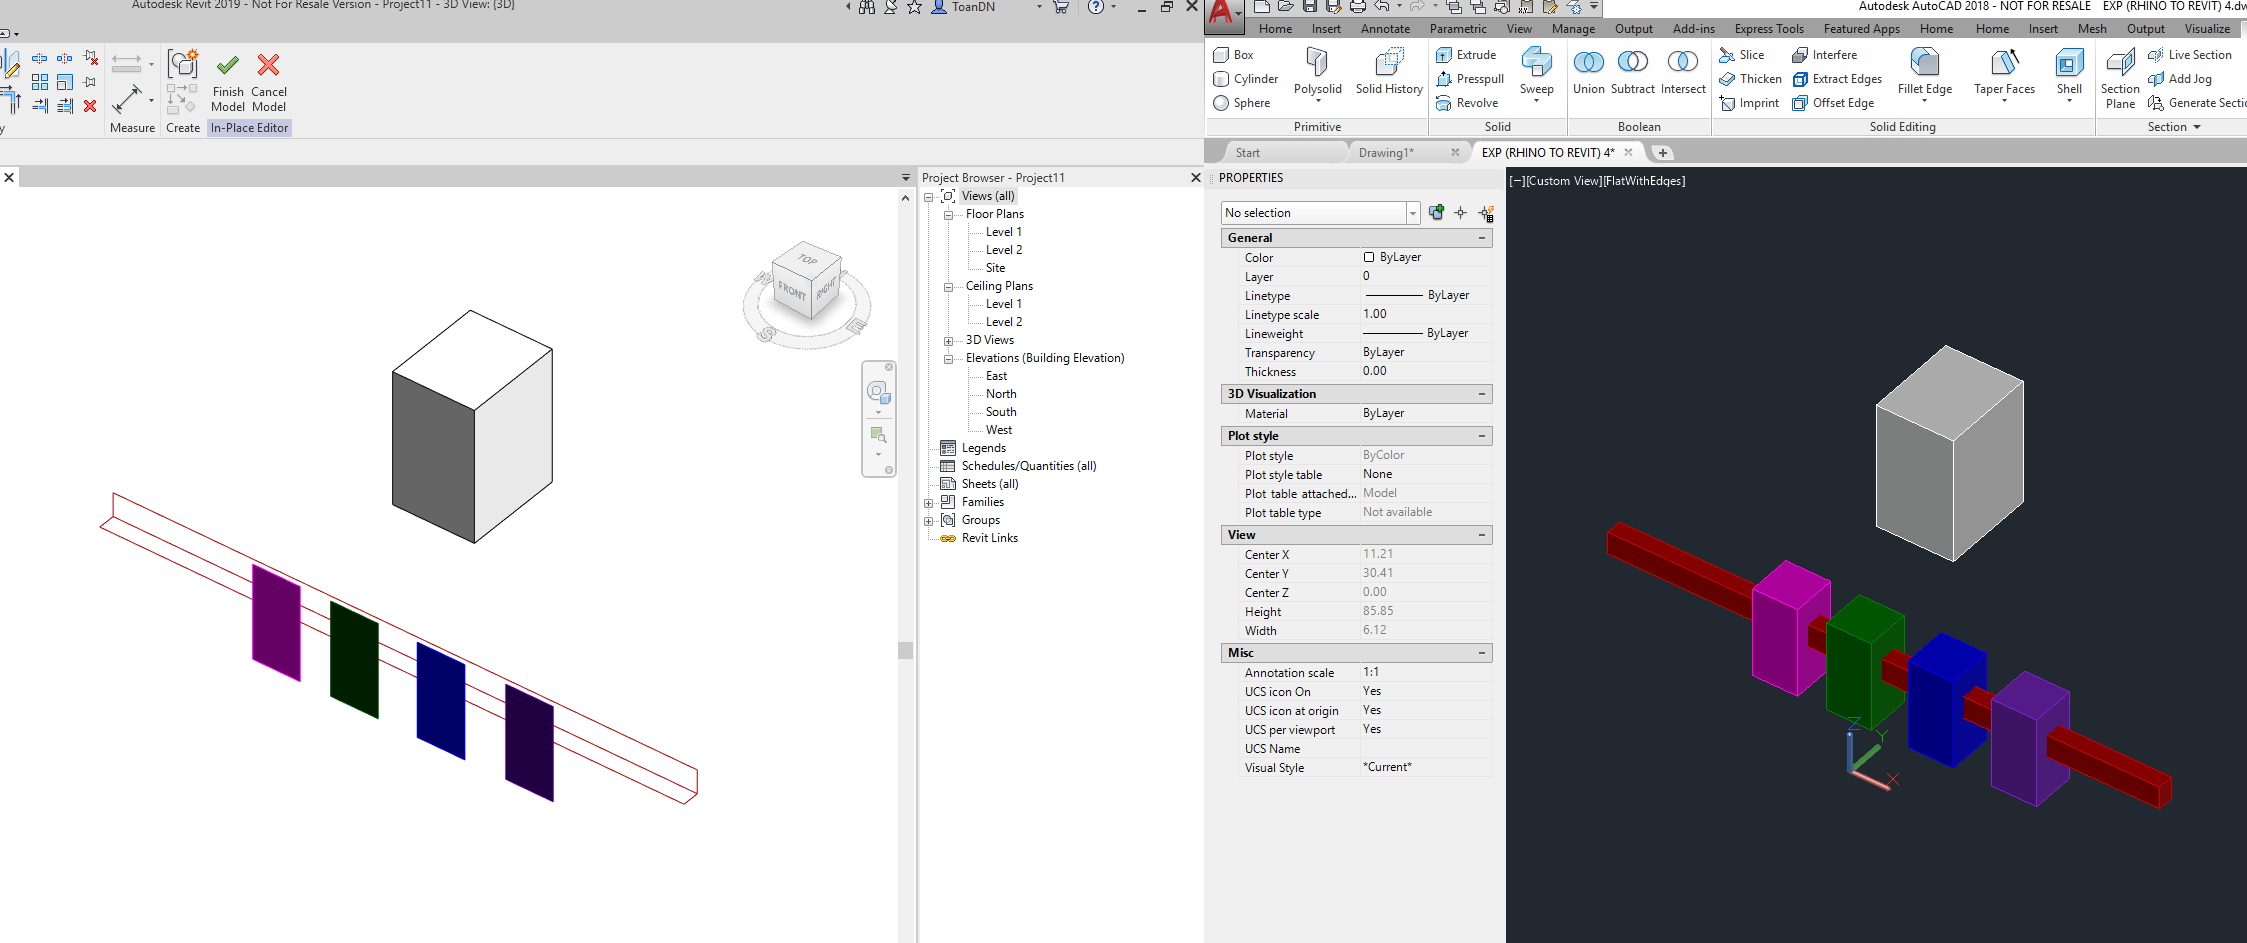 Solved: Rhino to Revit (Maintaining Layers Question) - Autodesk